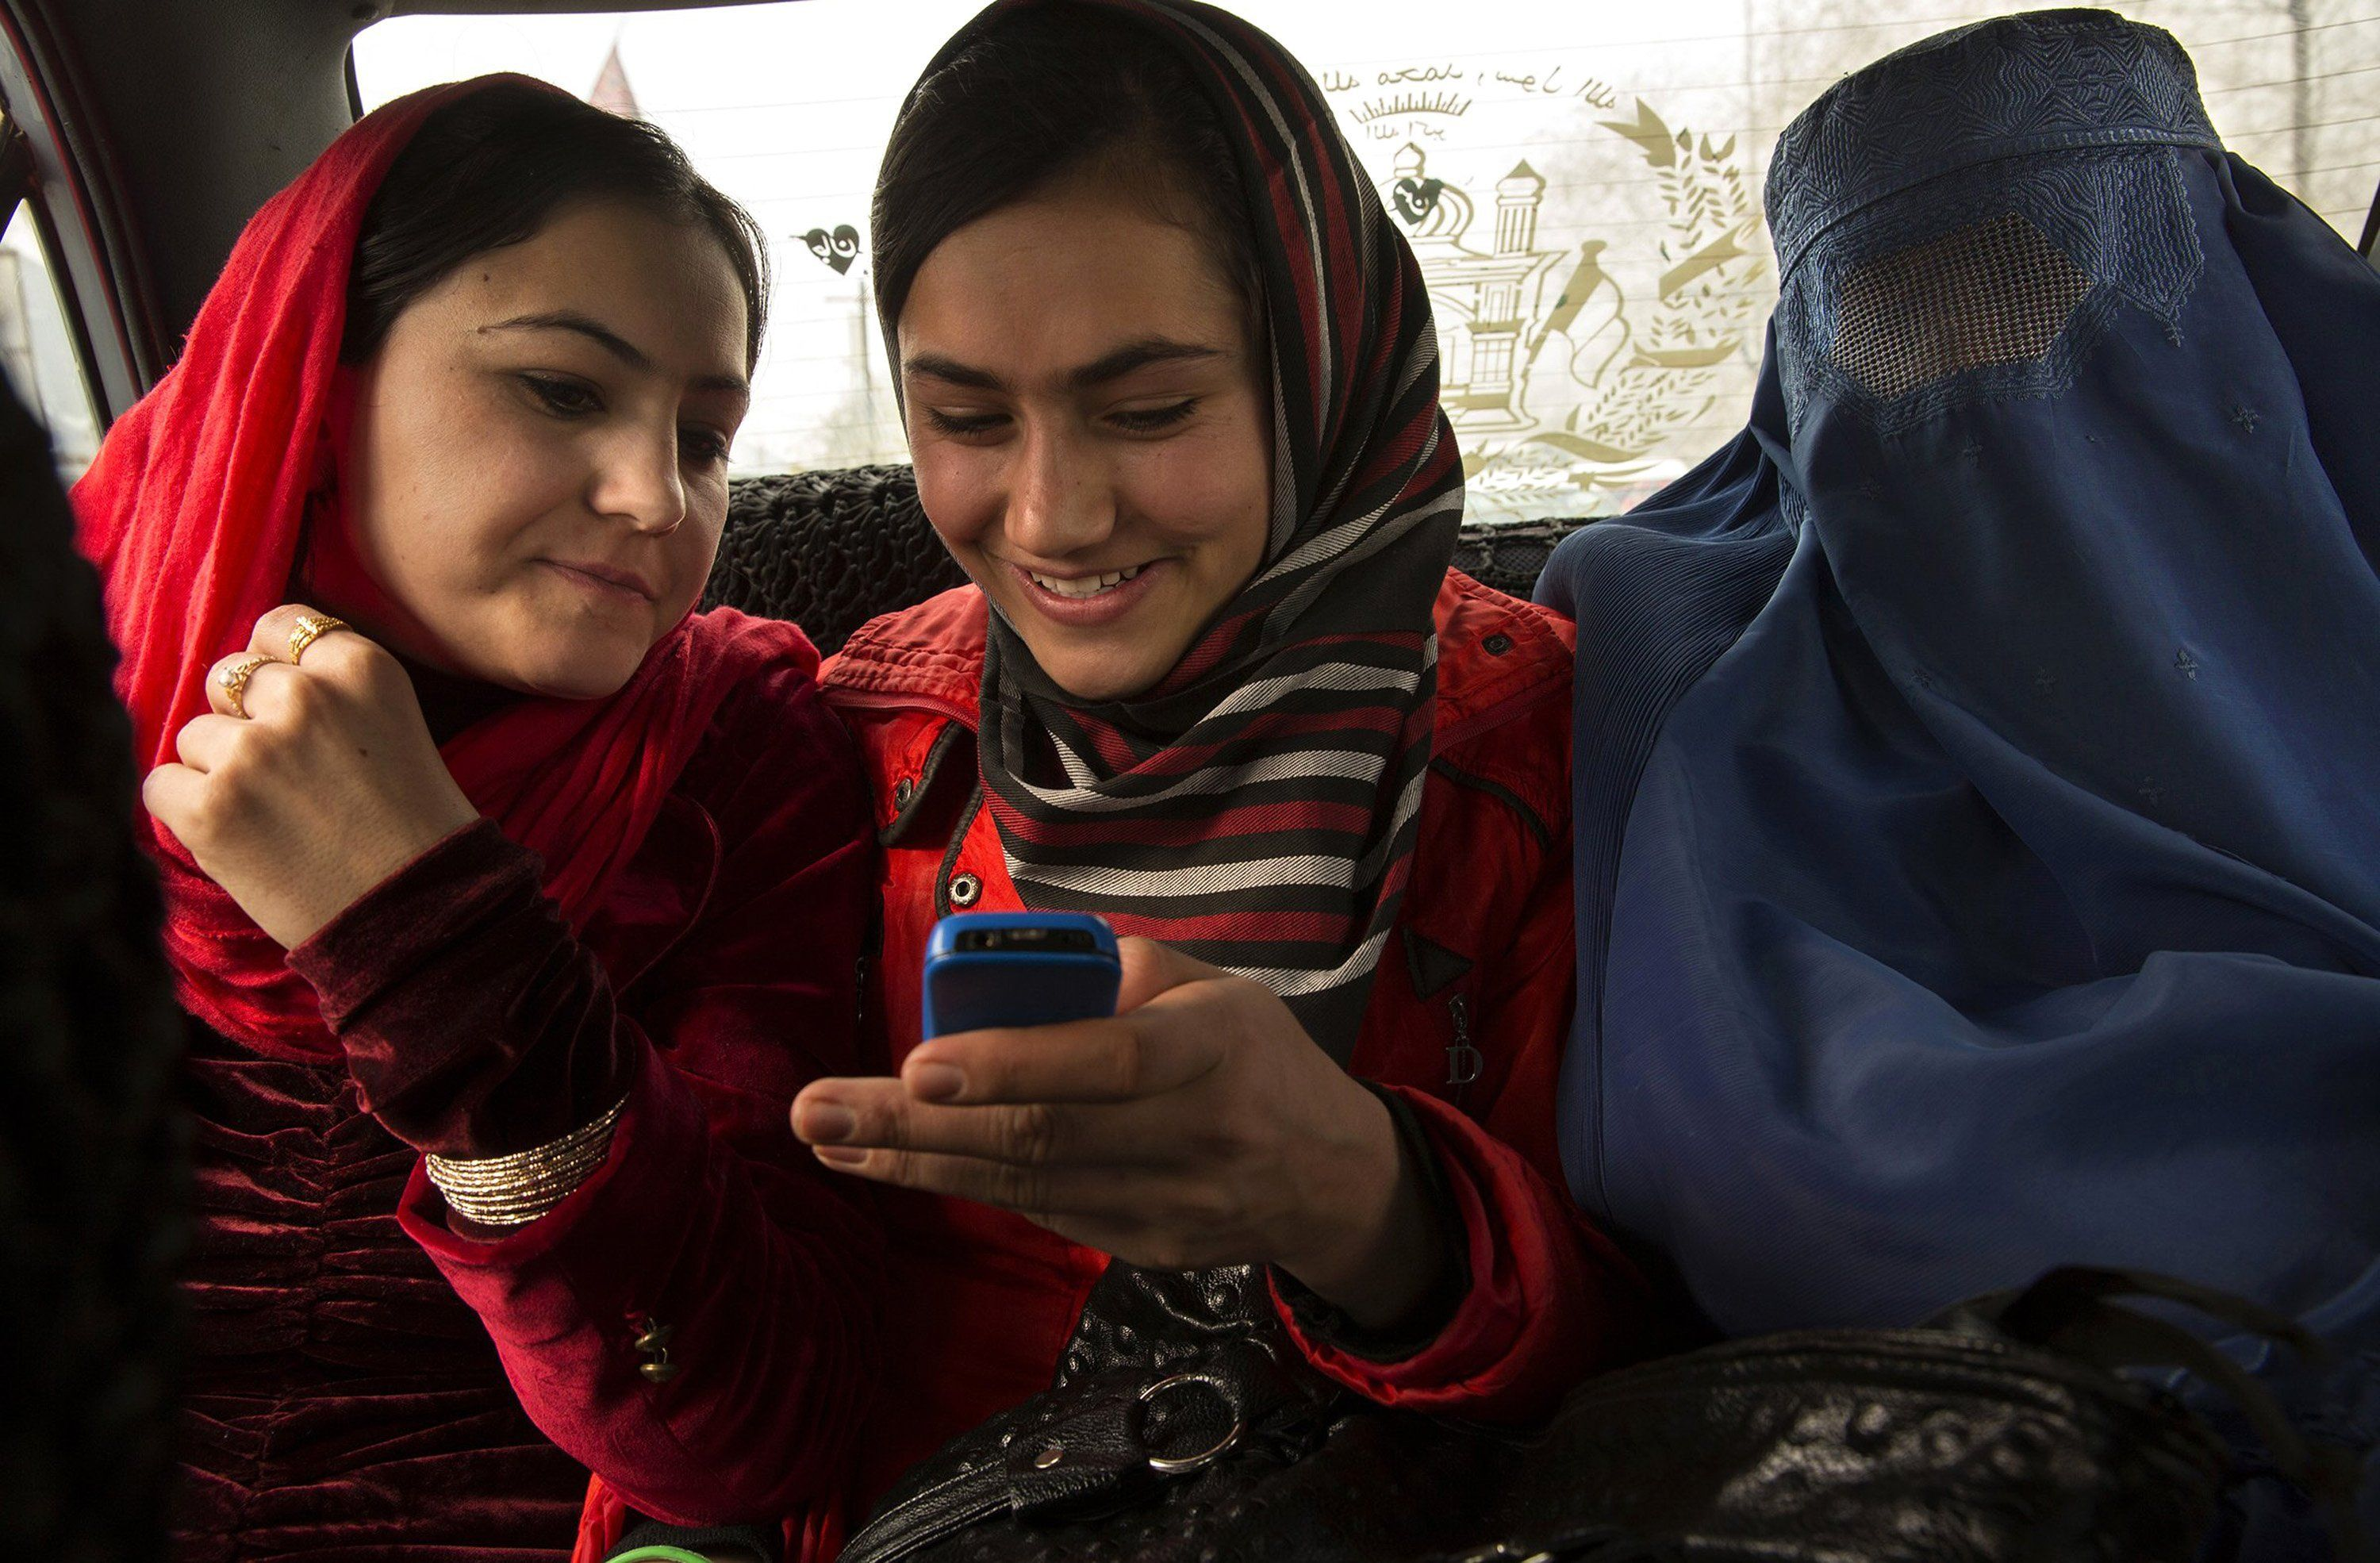 Newsela | If the Taliban takes power, Afghan women fear their freedoms may vanish